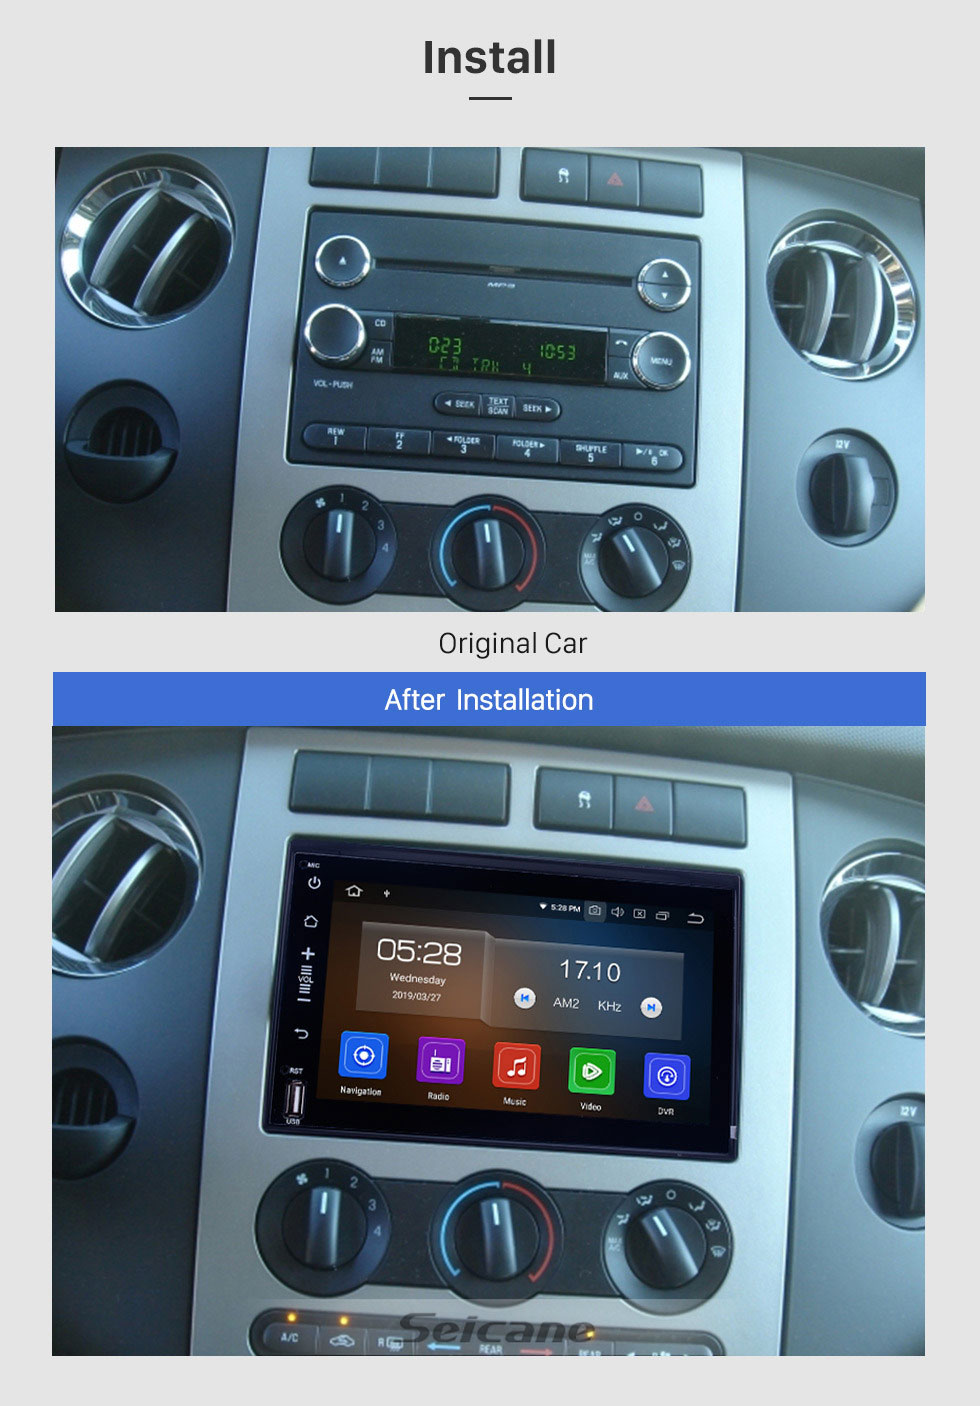 Seicane 2005-2008 2009 Ford Escape Mustang Android 9.0 1024 * 600 Radio-DVD GPS-Navigationssystem Bluetooth WiFi Spiegel Link-OBD2 1080P Video